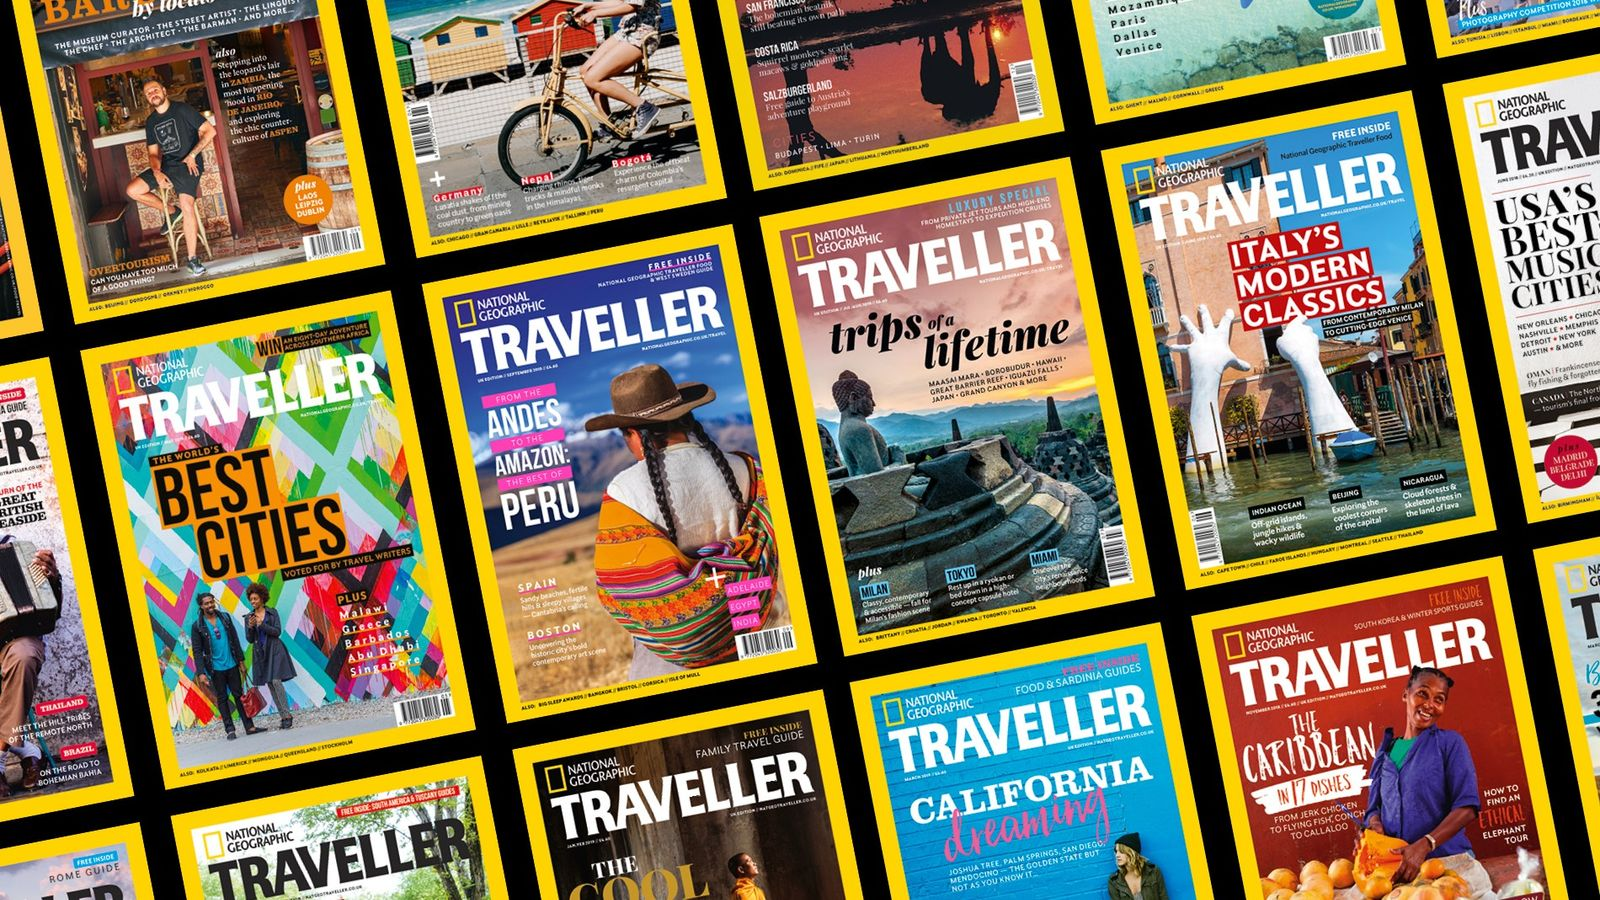 National Geographic Traveller (UK) covers